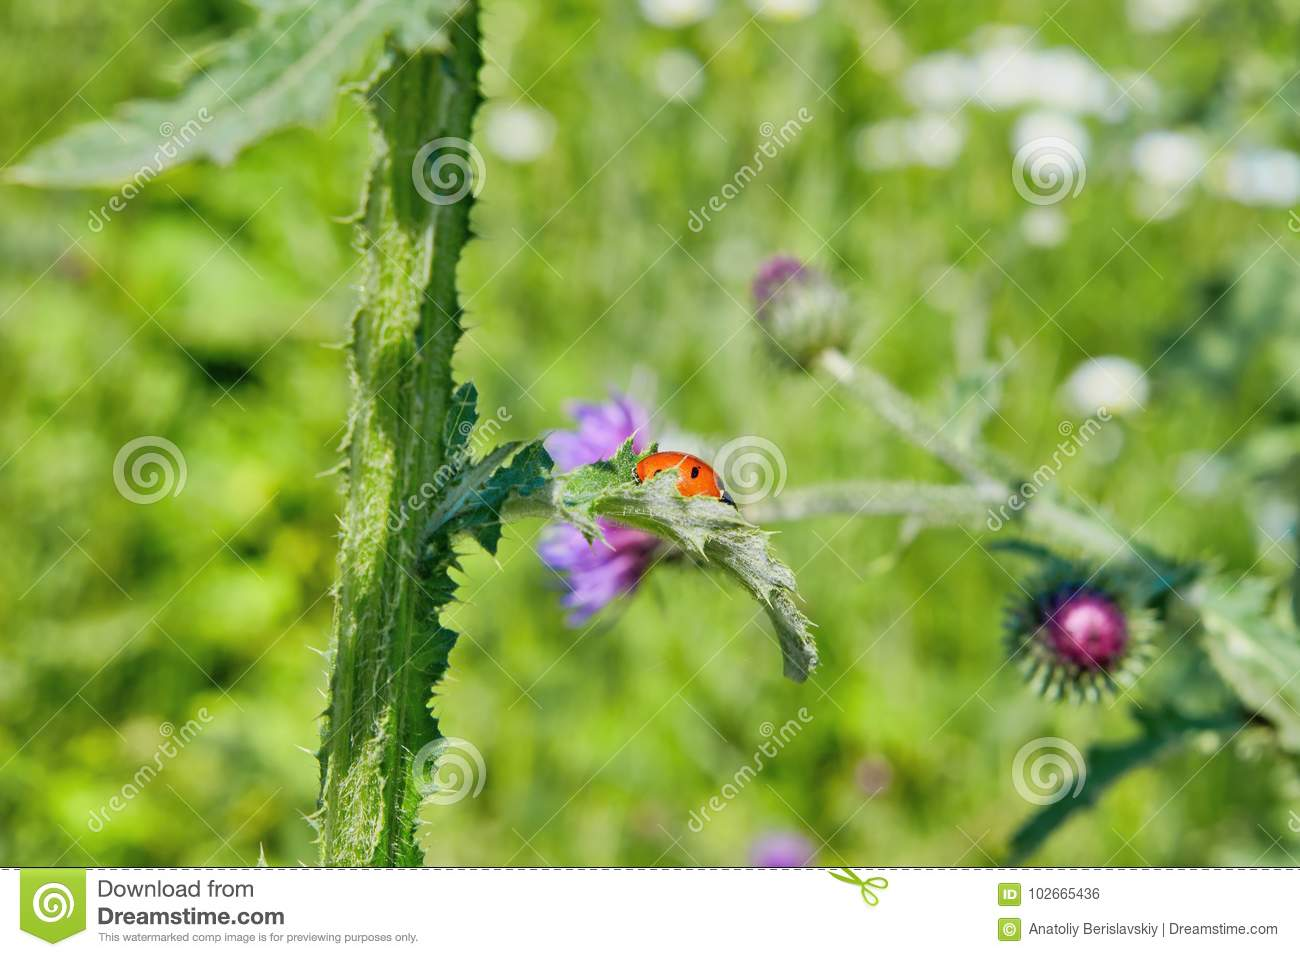 Ladybug On The Stem Of Burrs Stock Photo - Image of aphid